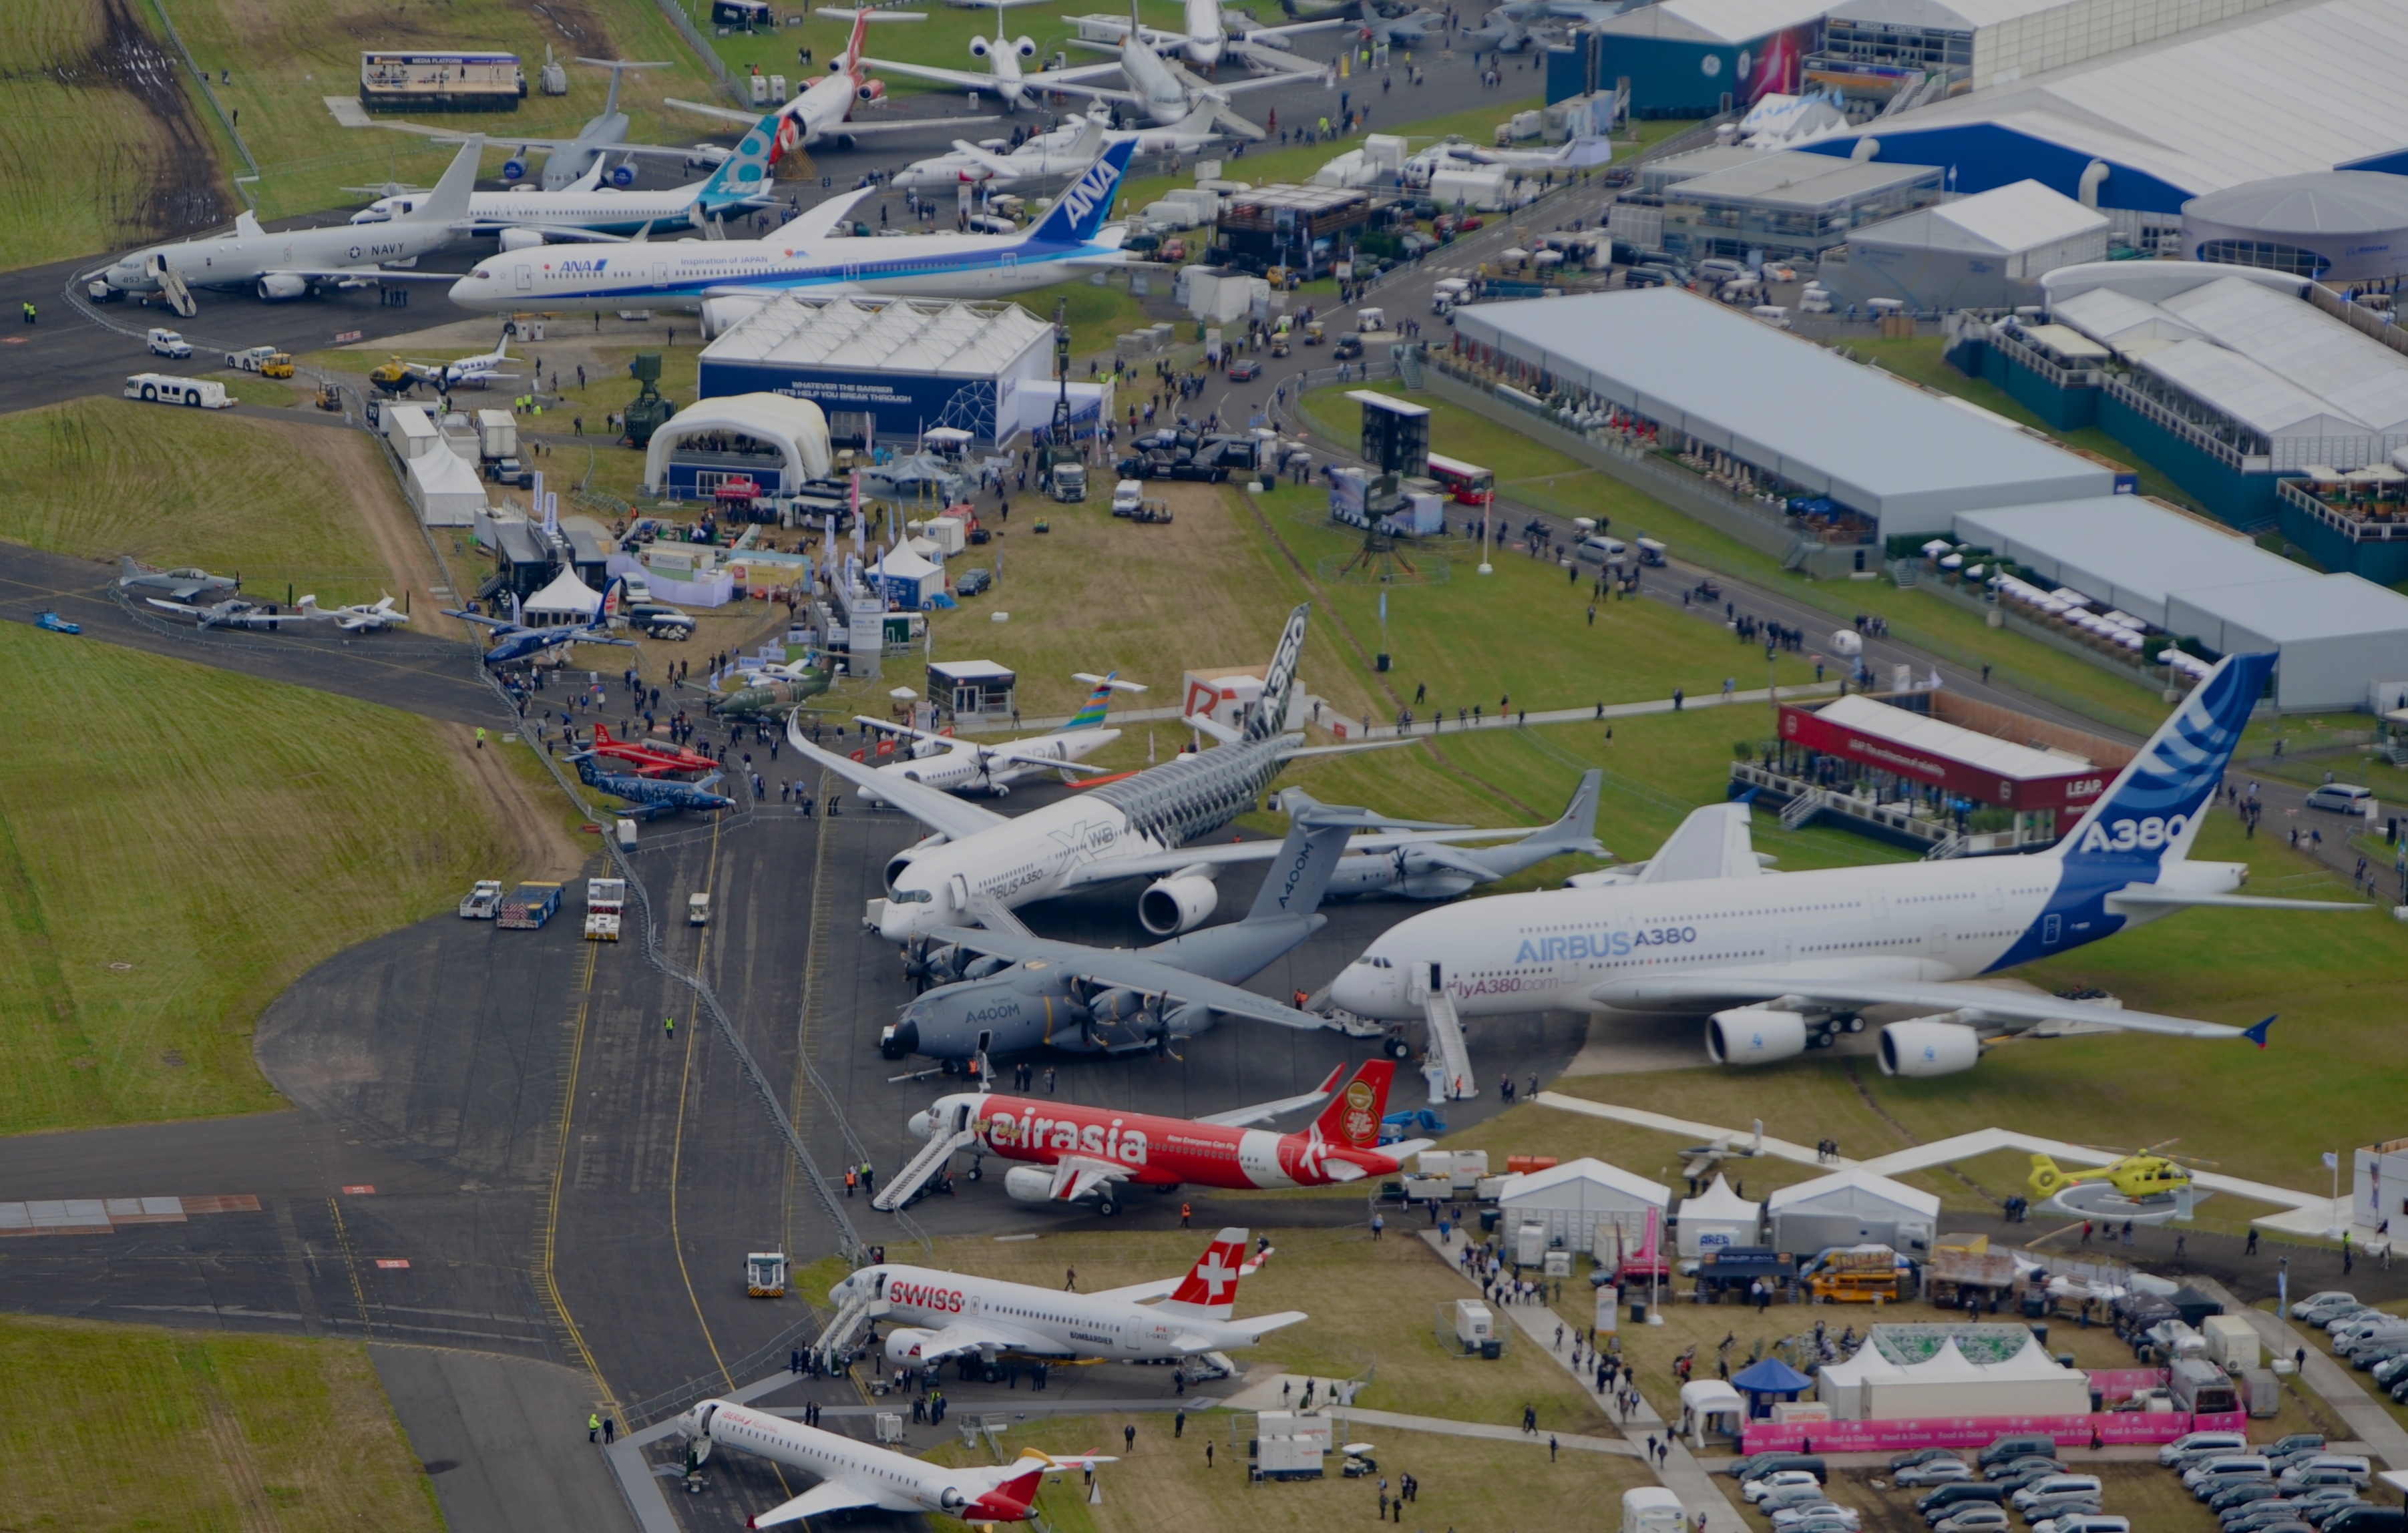 What Aviation Shows And Events You Must Attend In 2019?